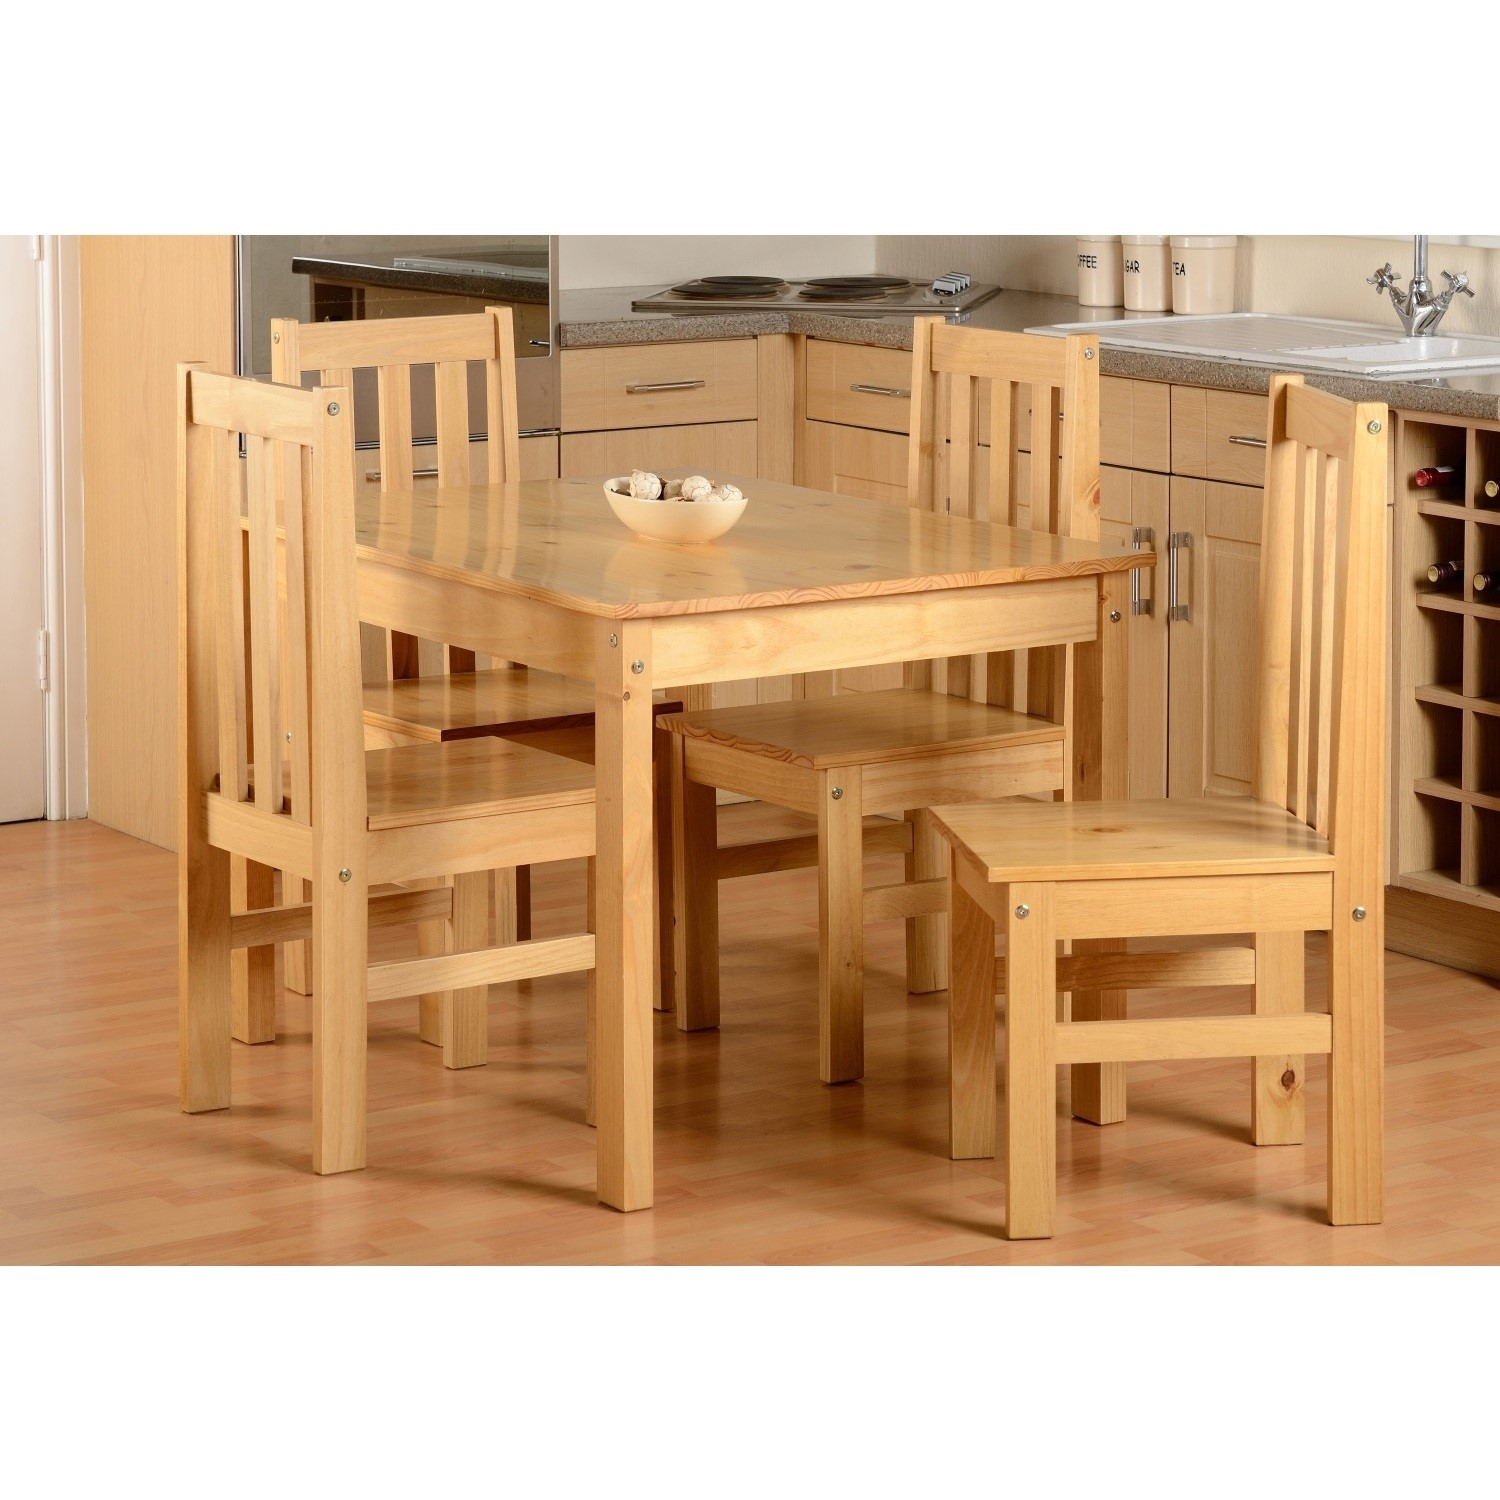 LUDLOW OAK EFFECT 4 SEATER DINING SET TABLE /& 4 CHAIRS NEW